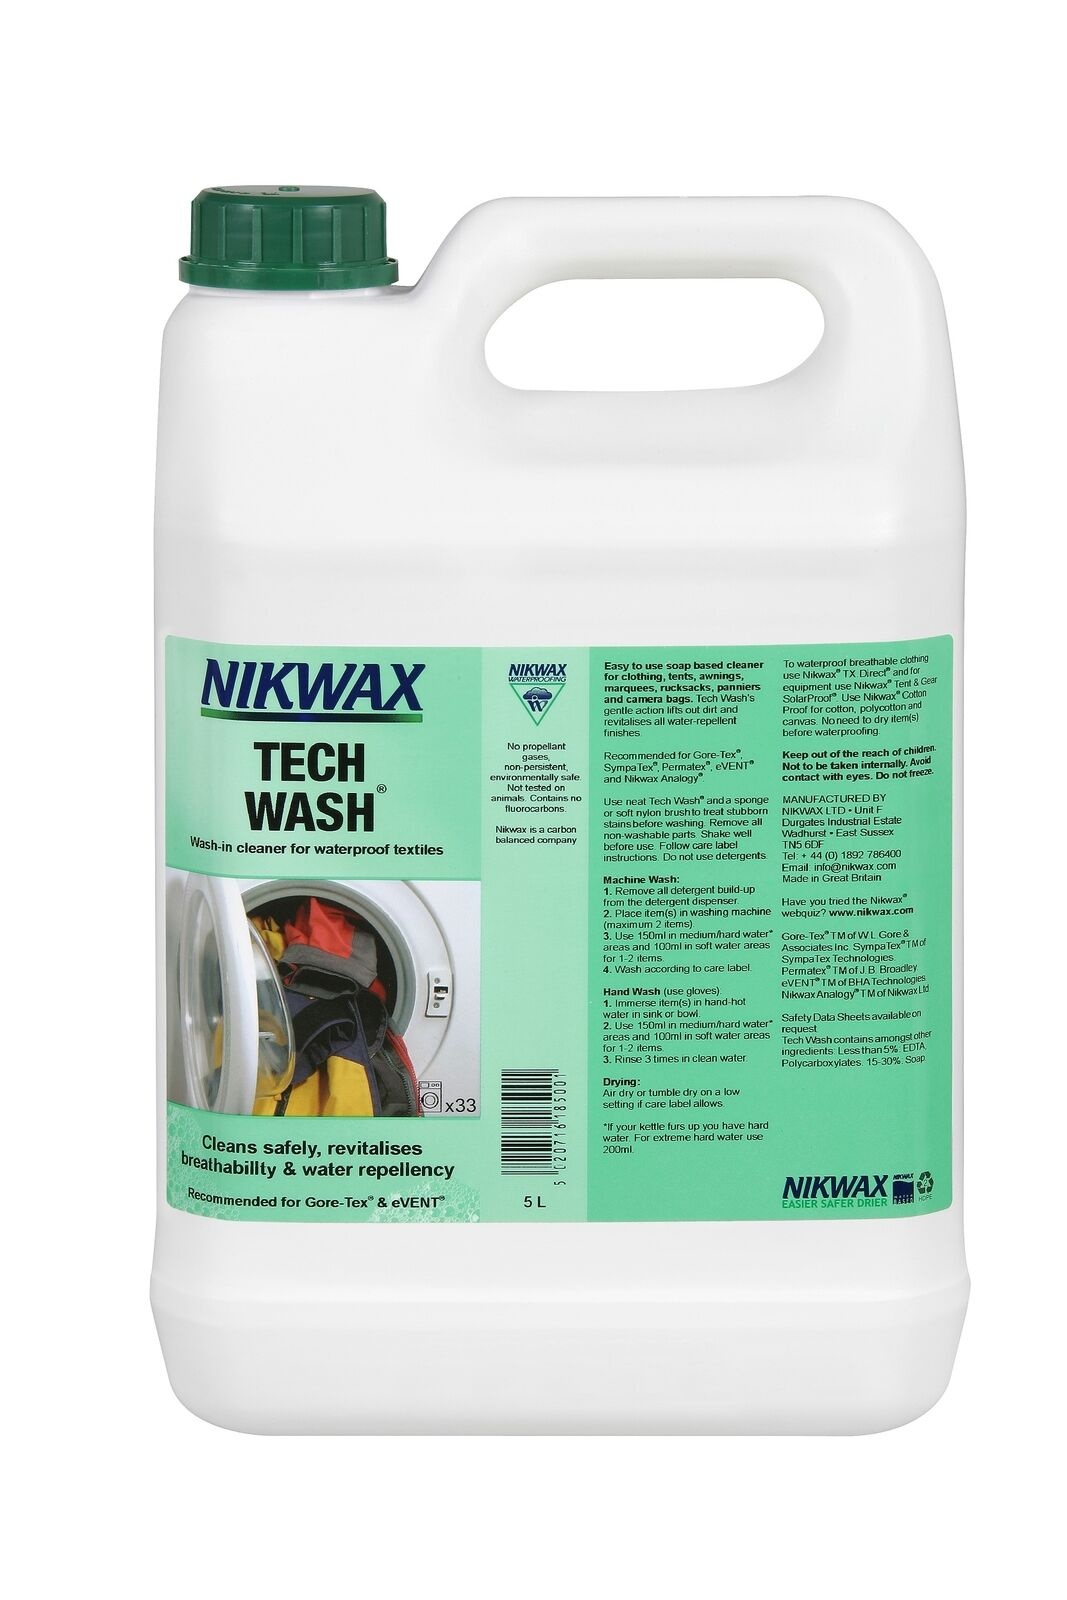 Nikwax Tech Wash 5 Litre  Wash-in Cleaner Waterproof Outdoor Clothing & Equipment  brand outlet